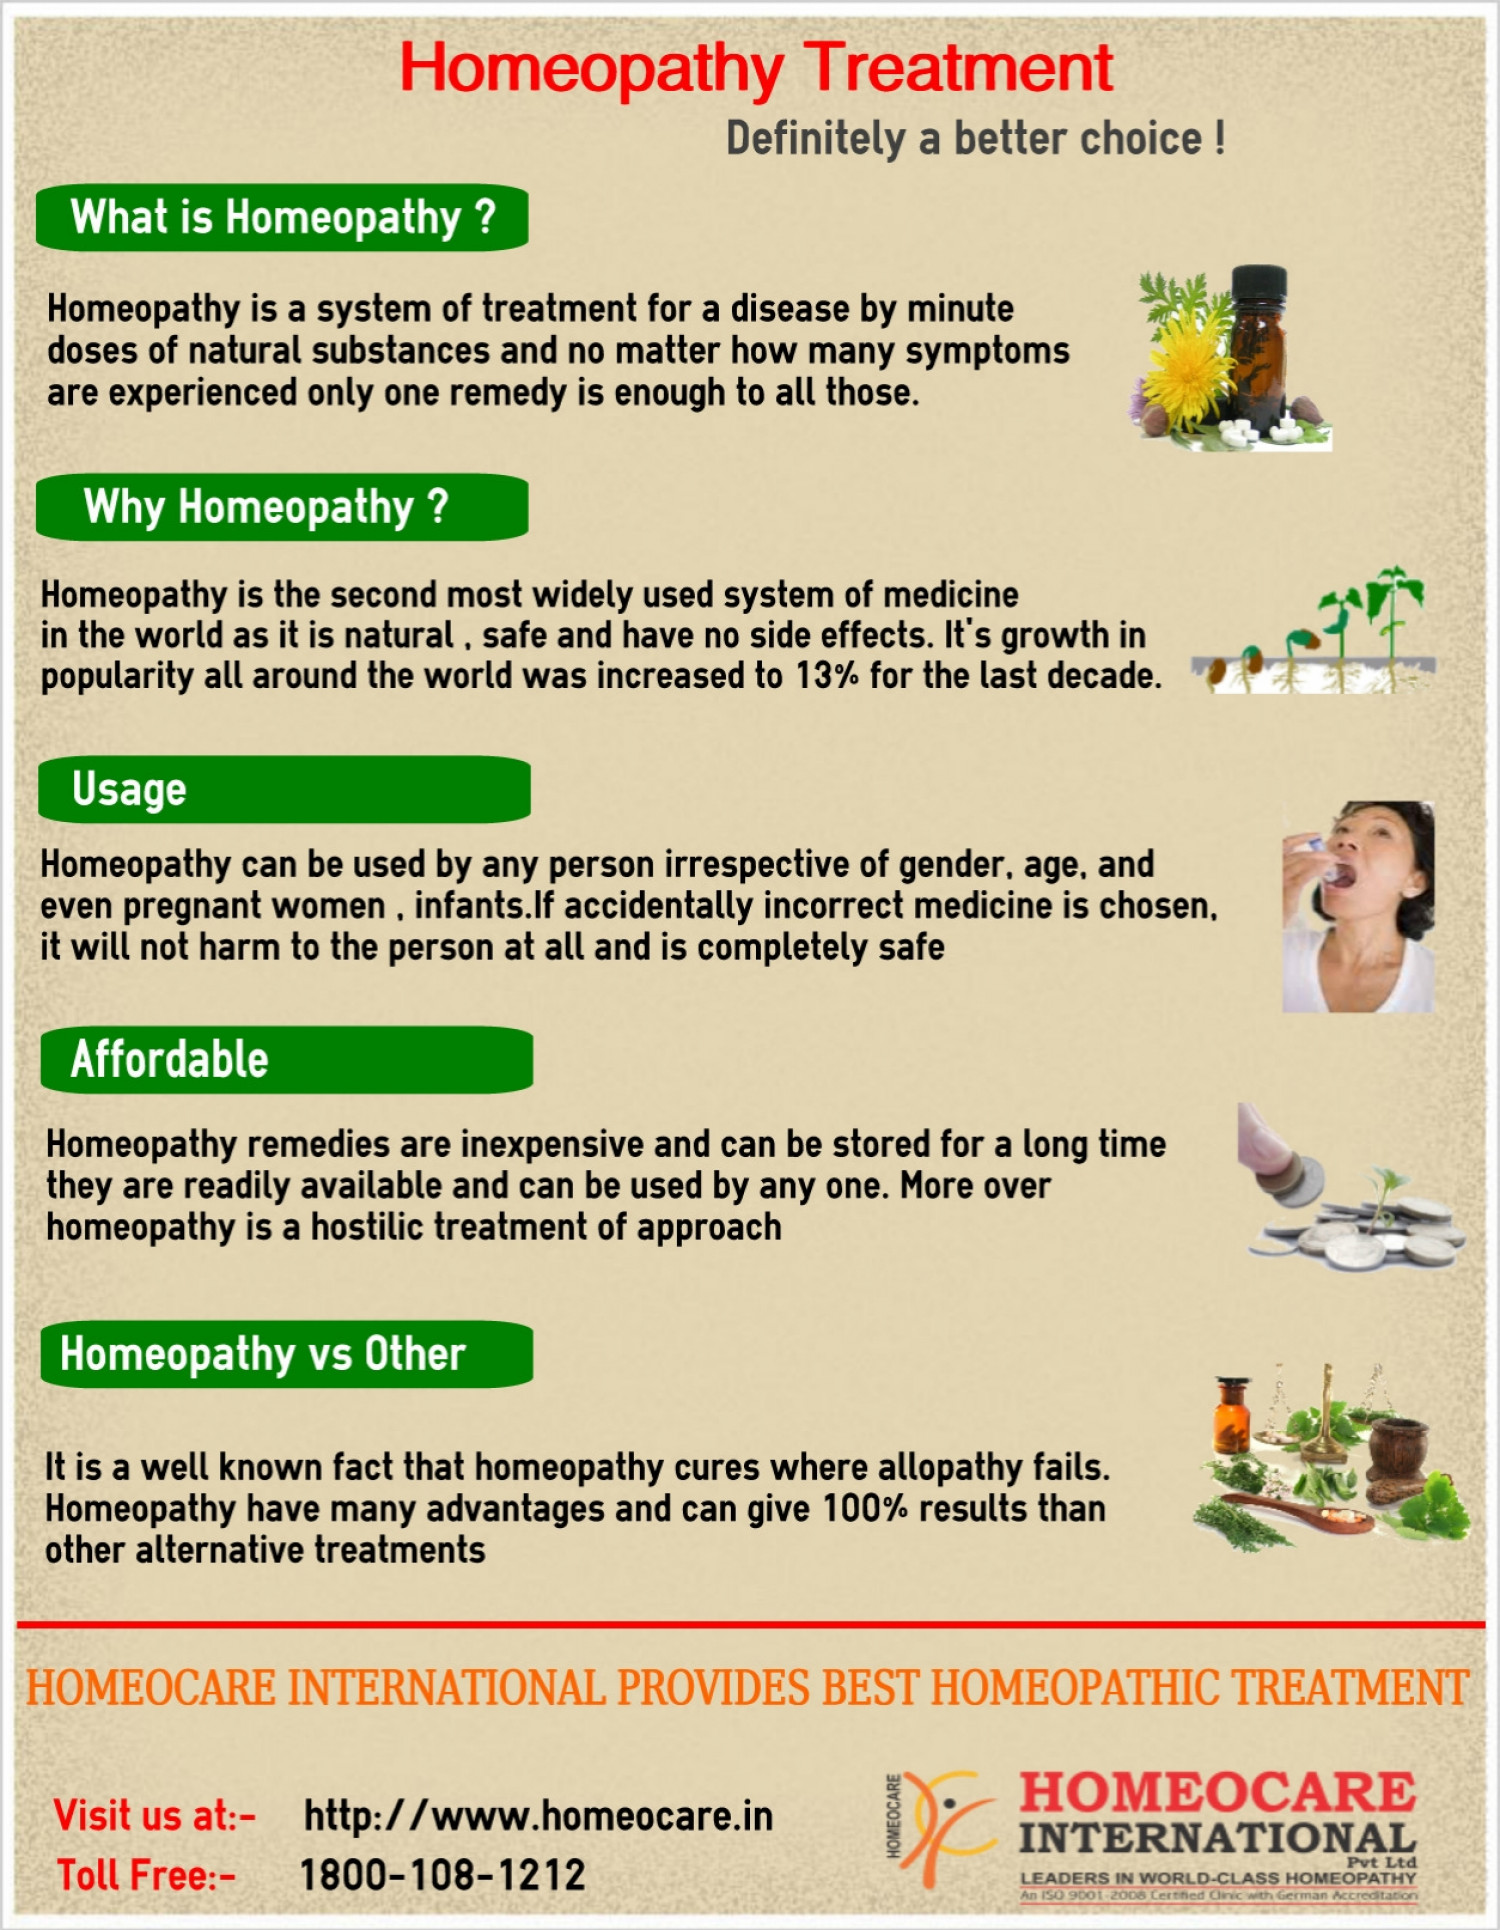 Homeopathy Treatment Infographic